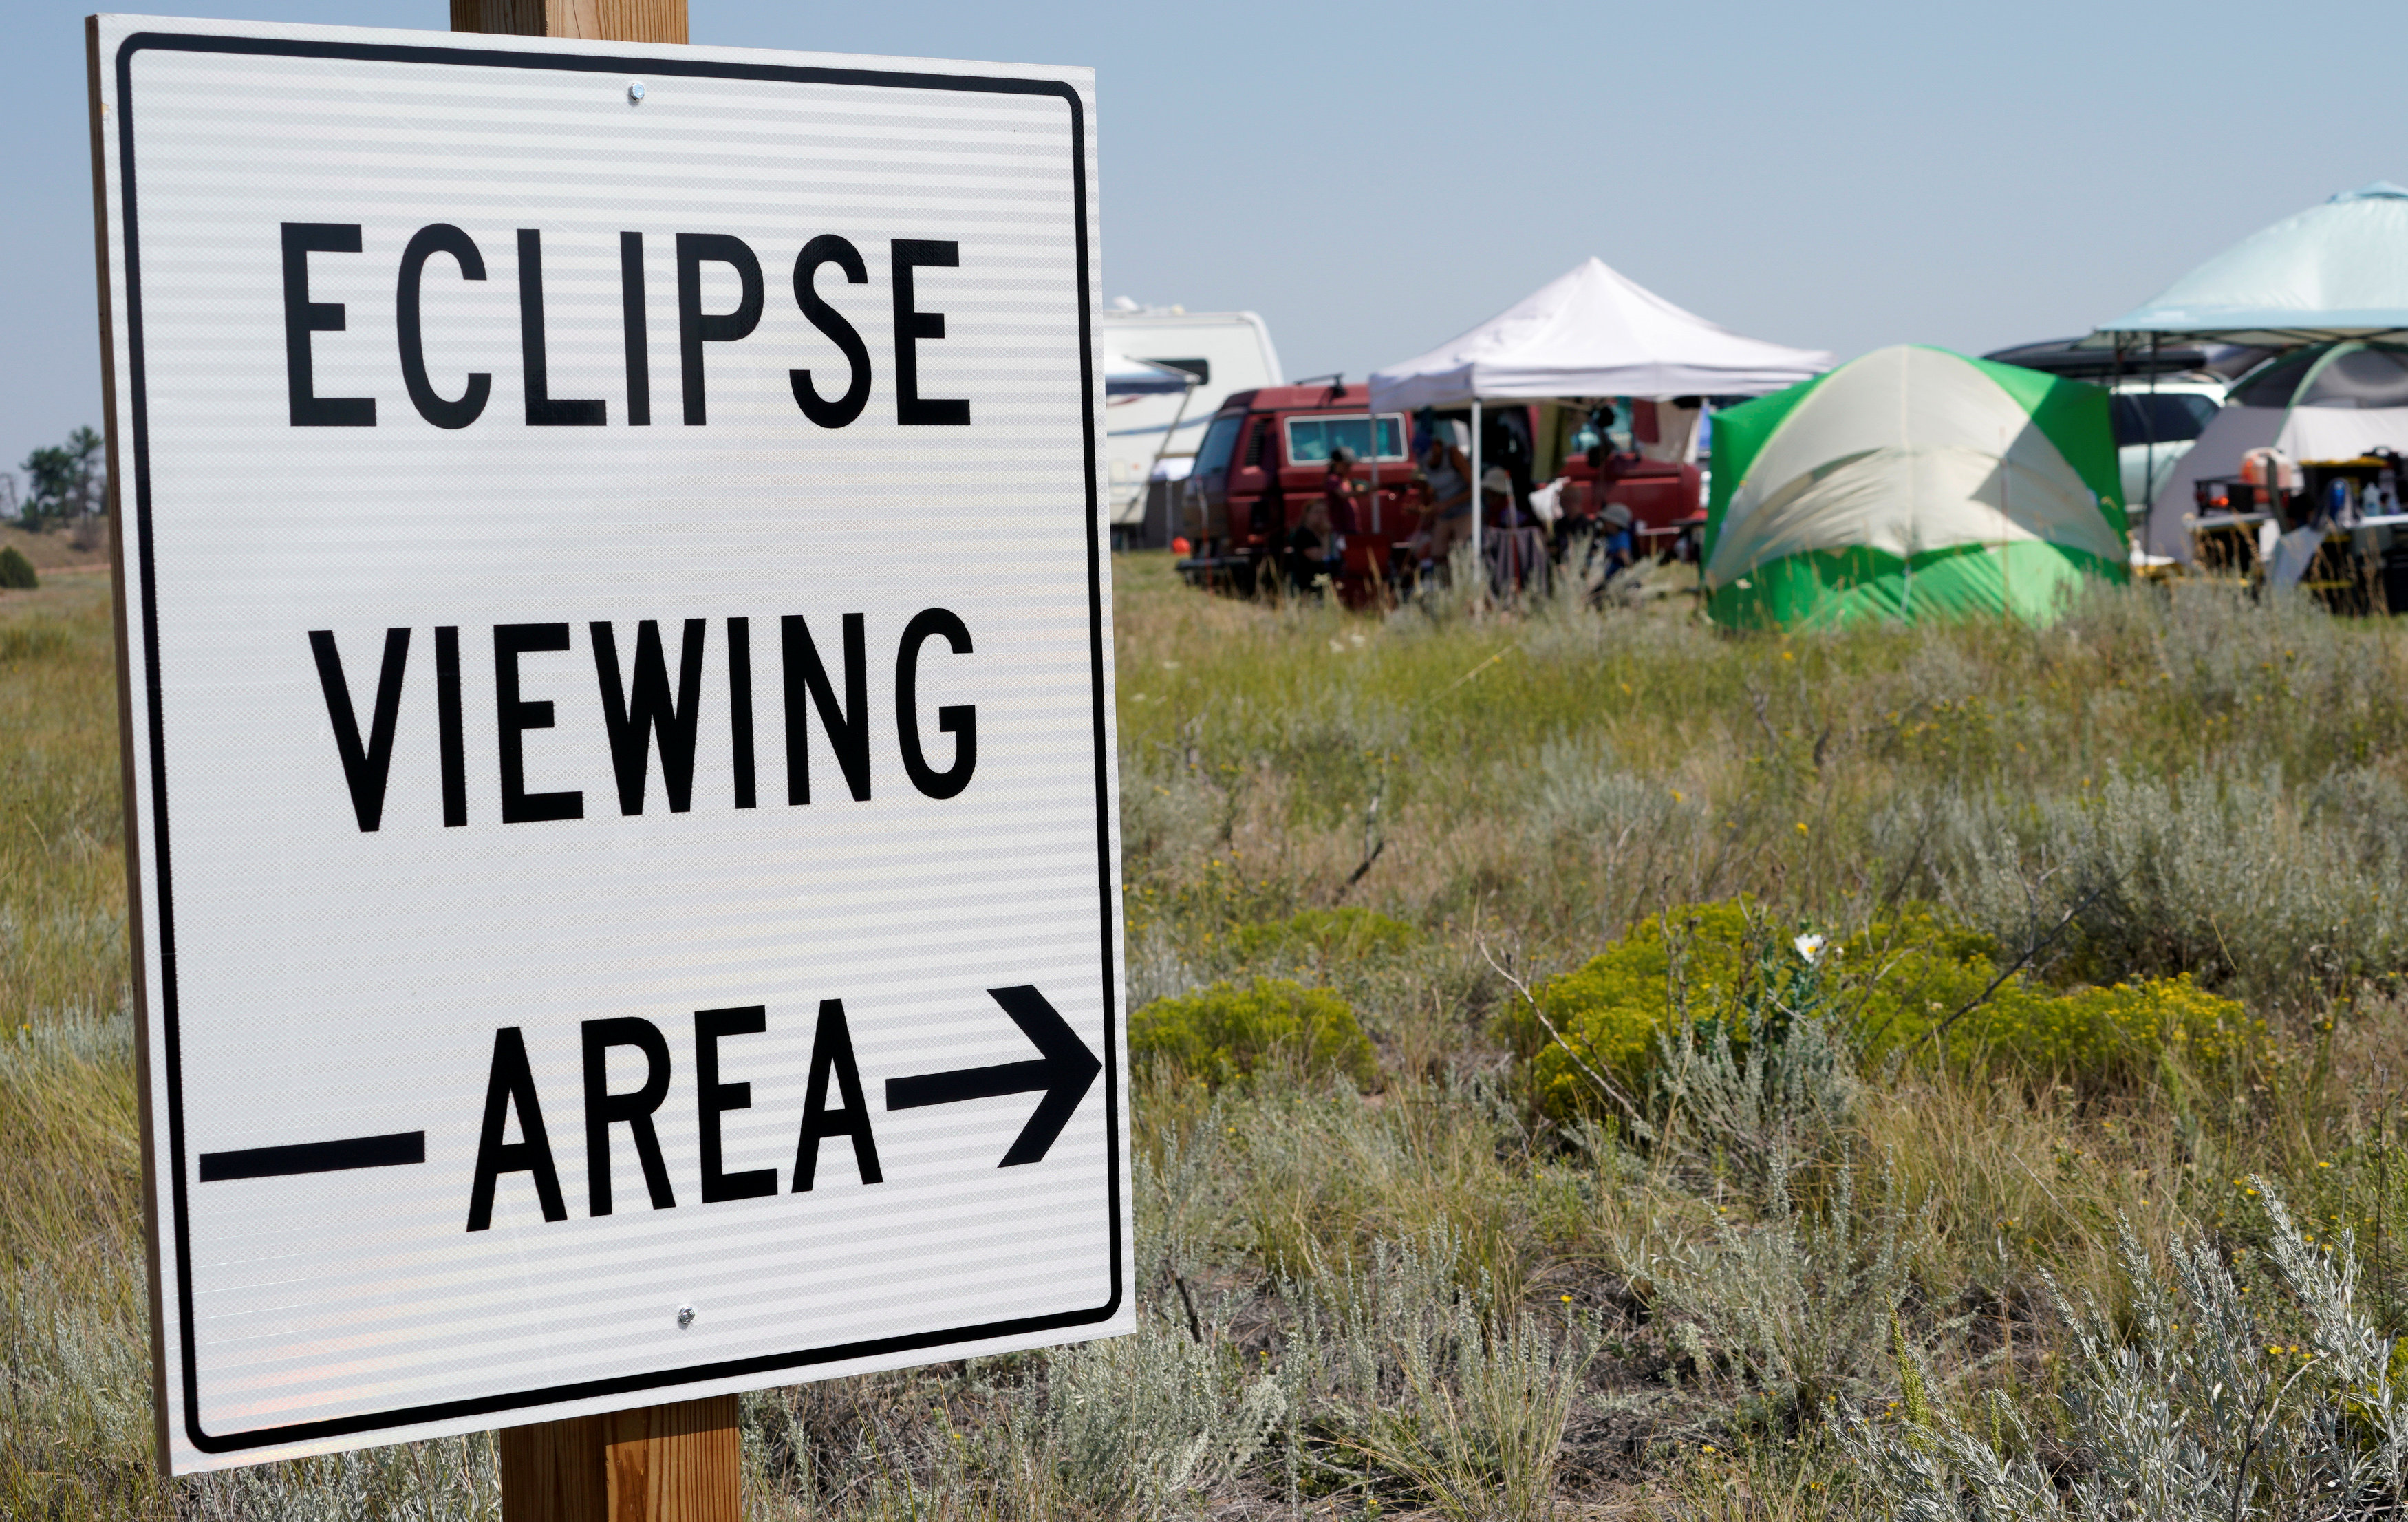 A designated eclipse viewing area is seen in a campground near Guernsey, Wyoming on August 20, 2017. (REUTERS/Rick Wilking)